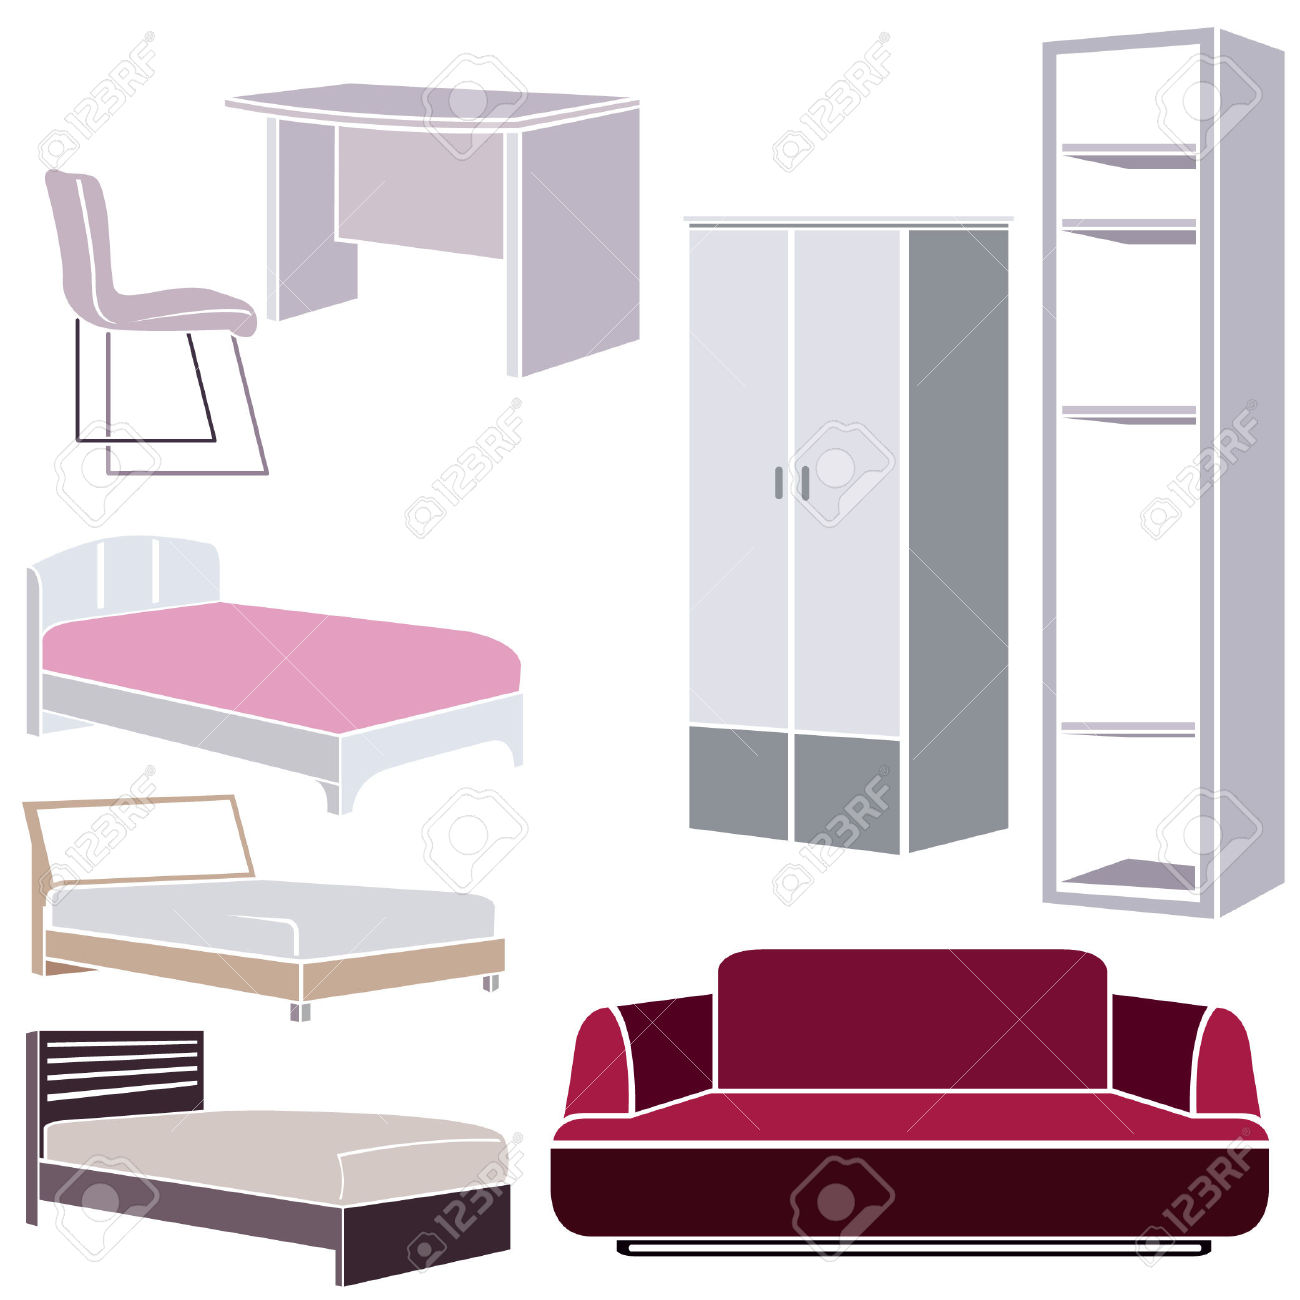 Interior Design Icons, Furniture Set Royalty Free Cliparts.